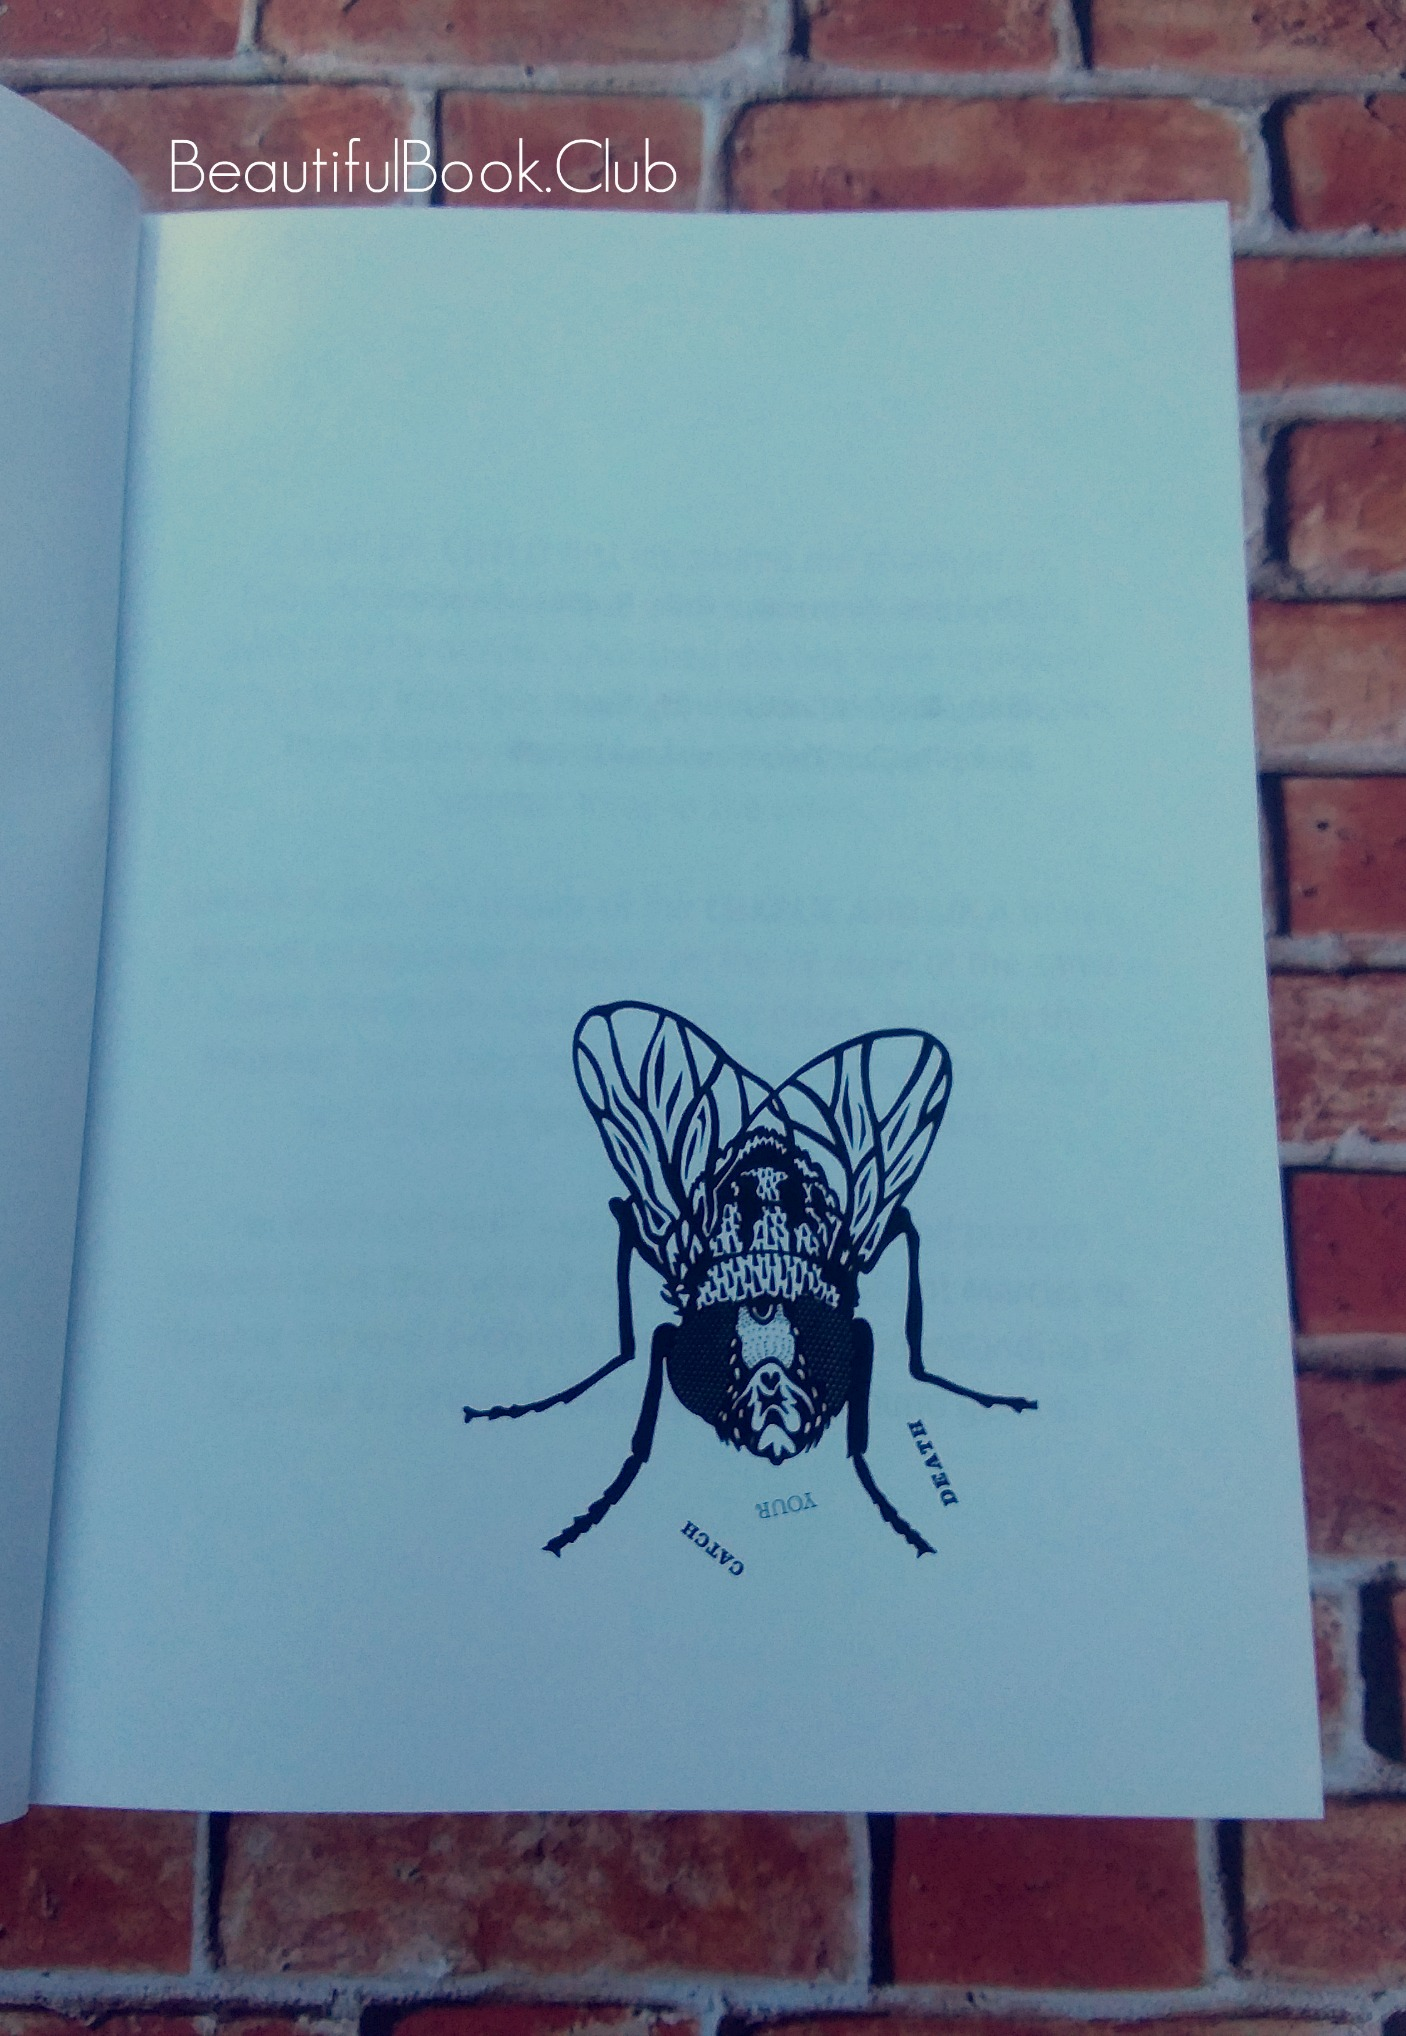 Catch Your Death by Lauren Child Ruby Redfort series book #3 first page picture of a fly